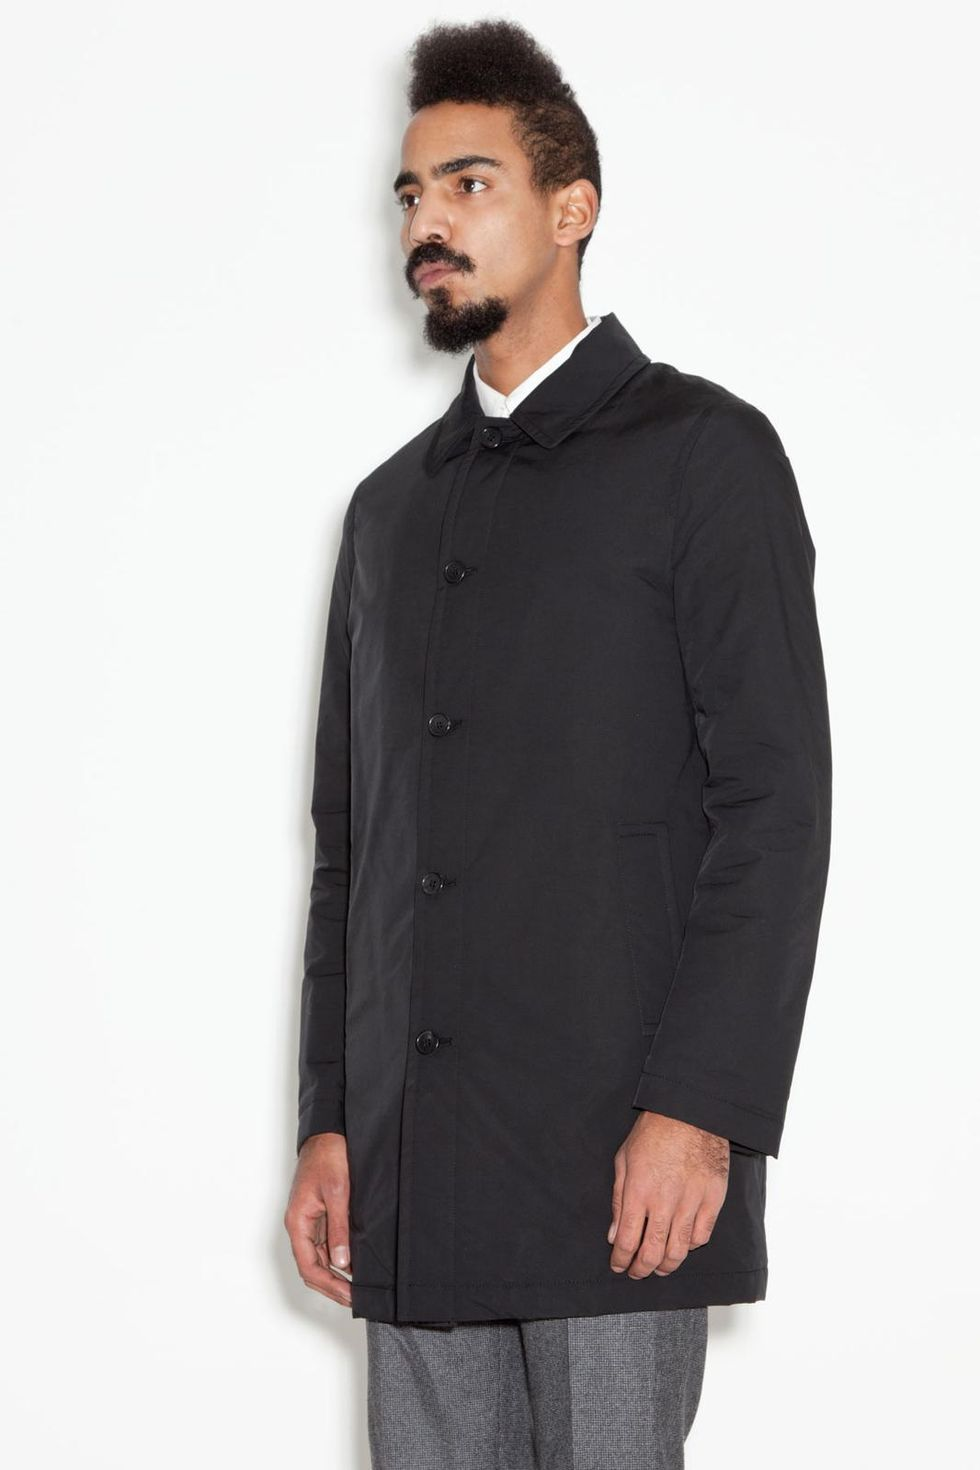 marni-coat-black04.jpg